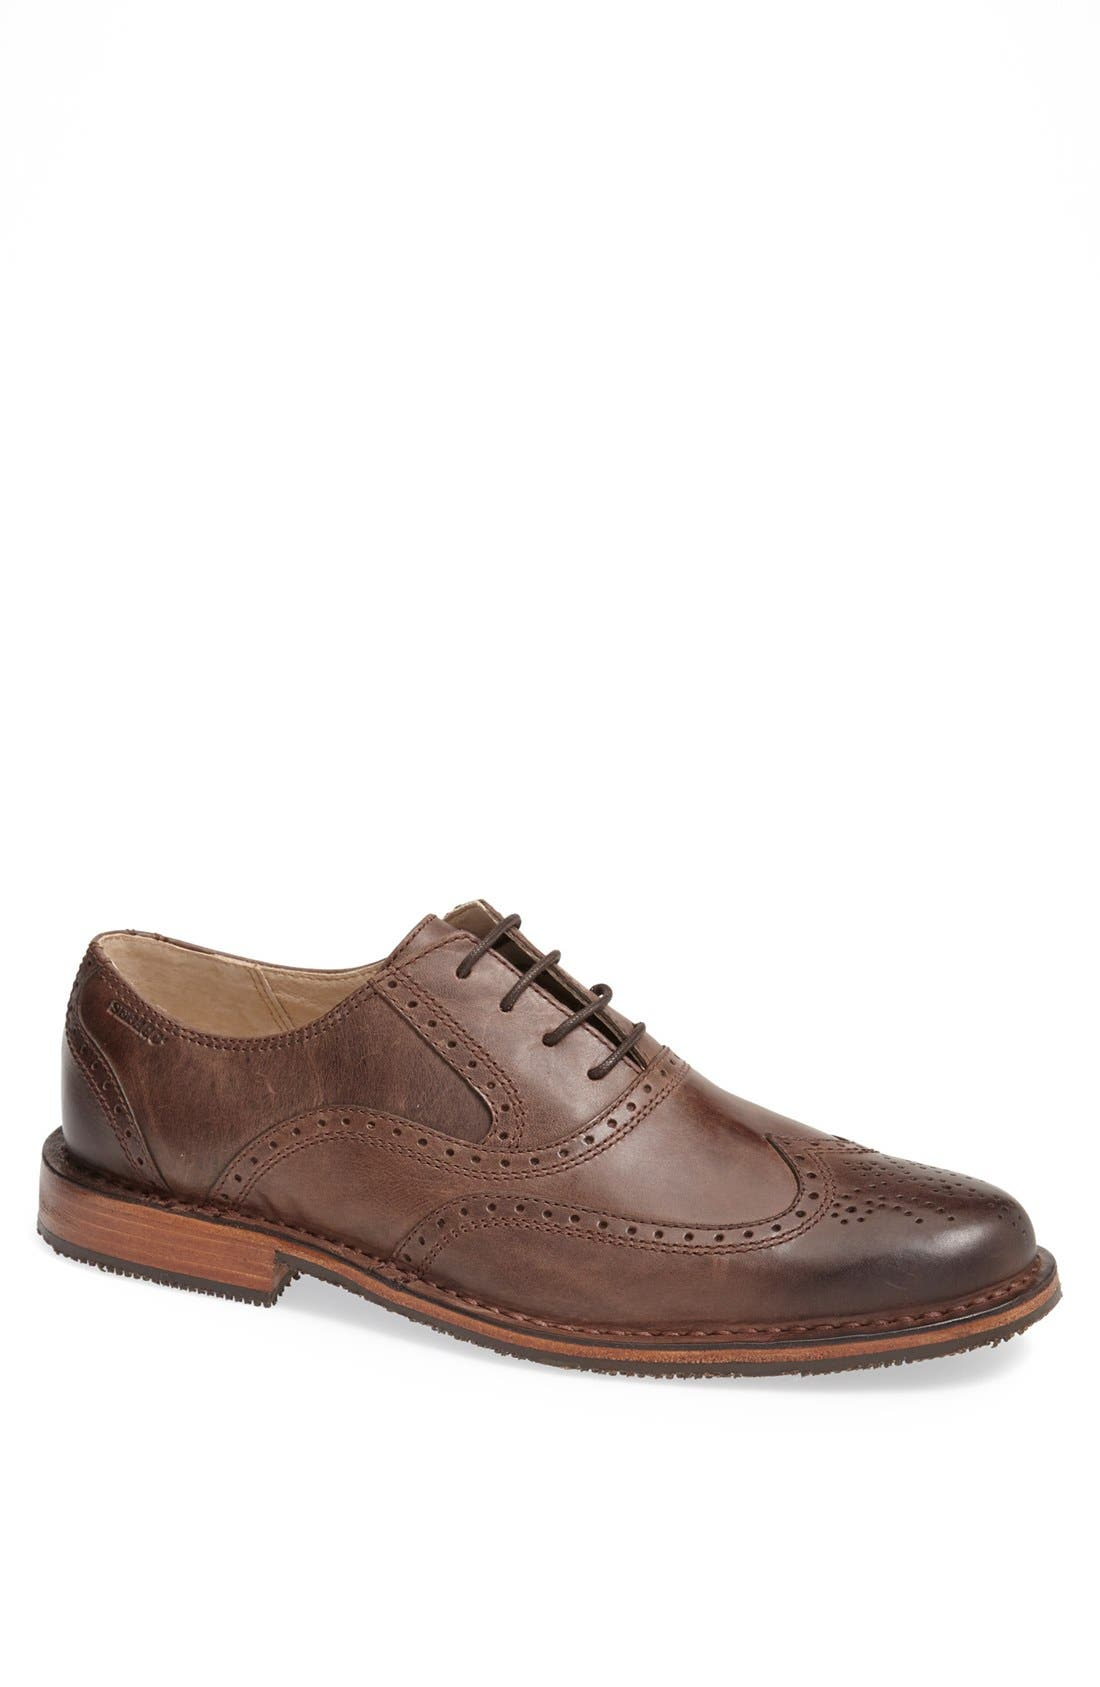 'Brattle' Wingtip Oxford, Main, color, Dark Brown